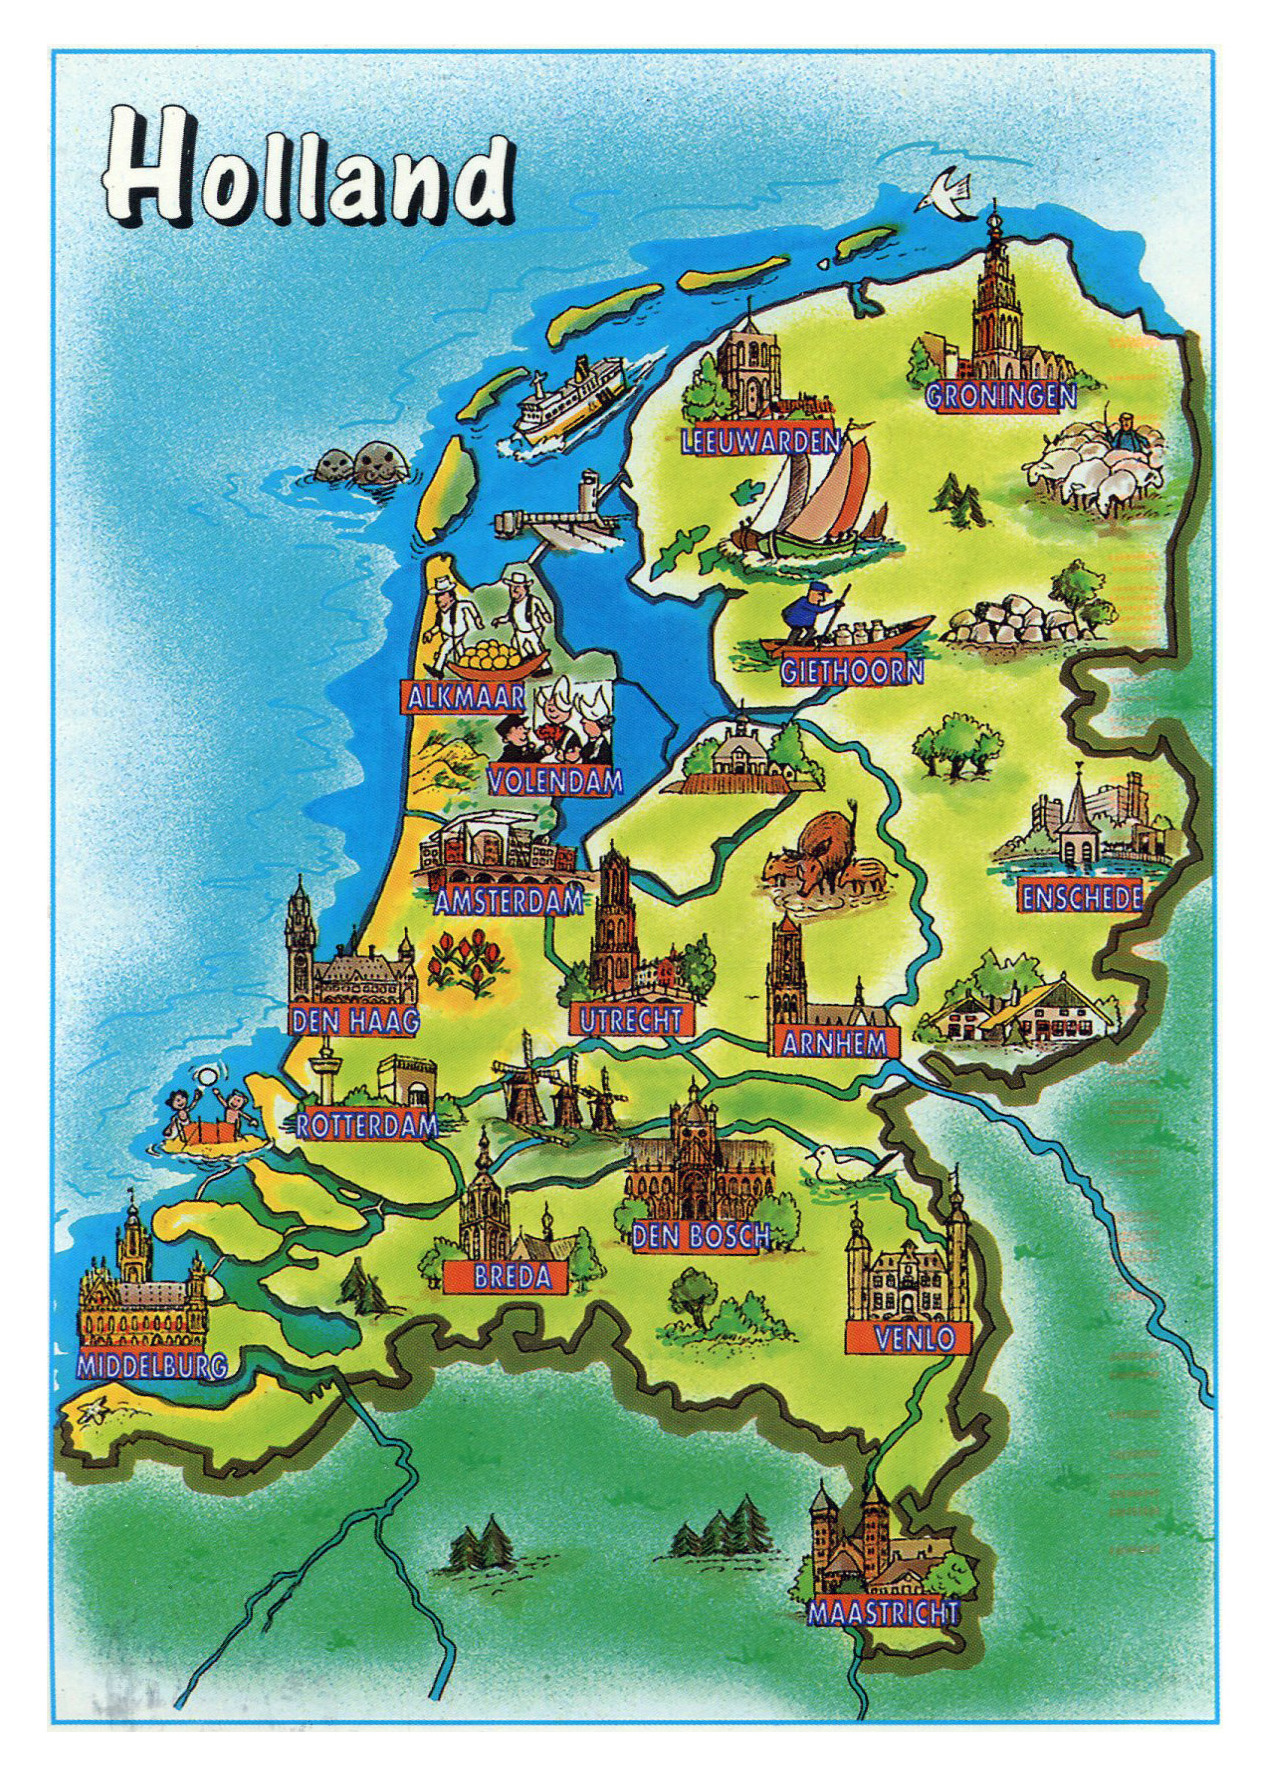 Large tourist illustrated map of Netherlands Holland